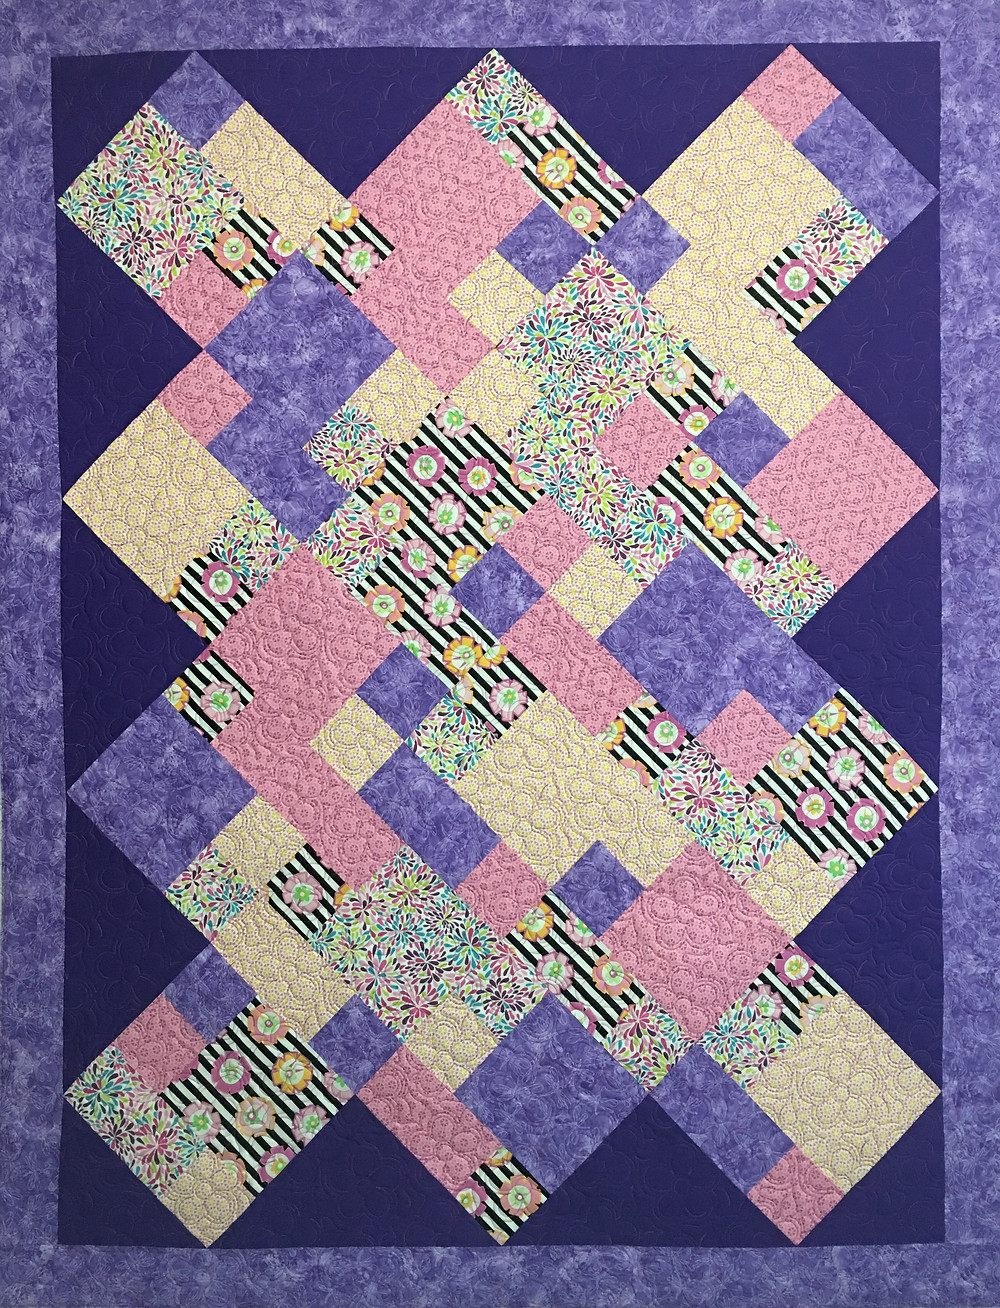 Scrappy Blocks Quilt by Charlene Lancaster